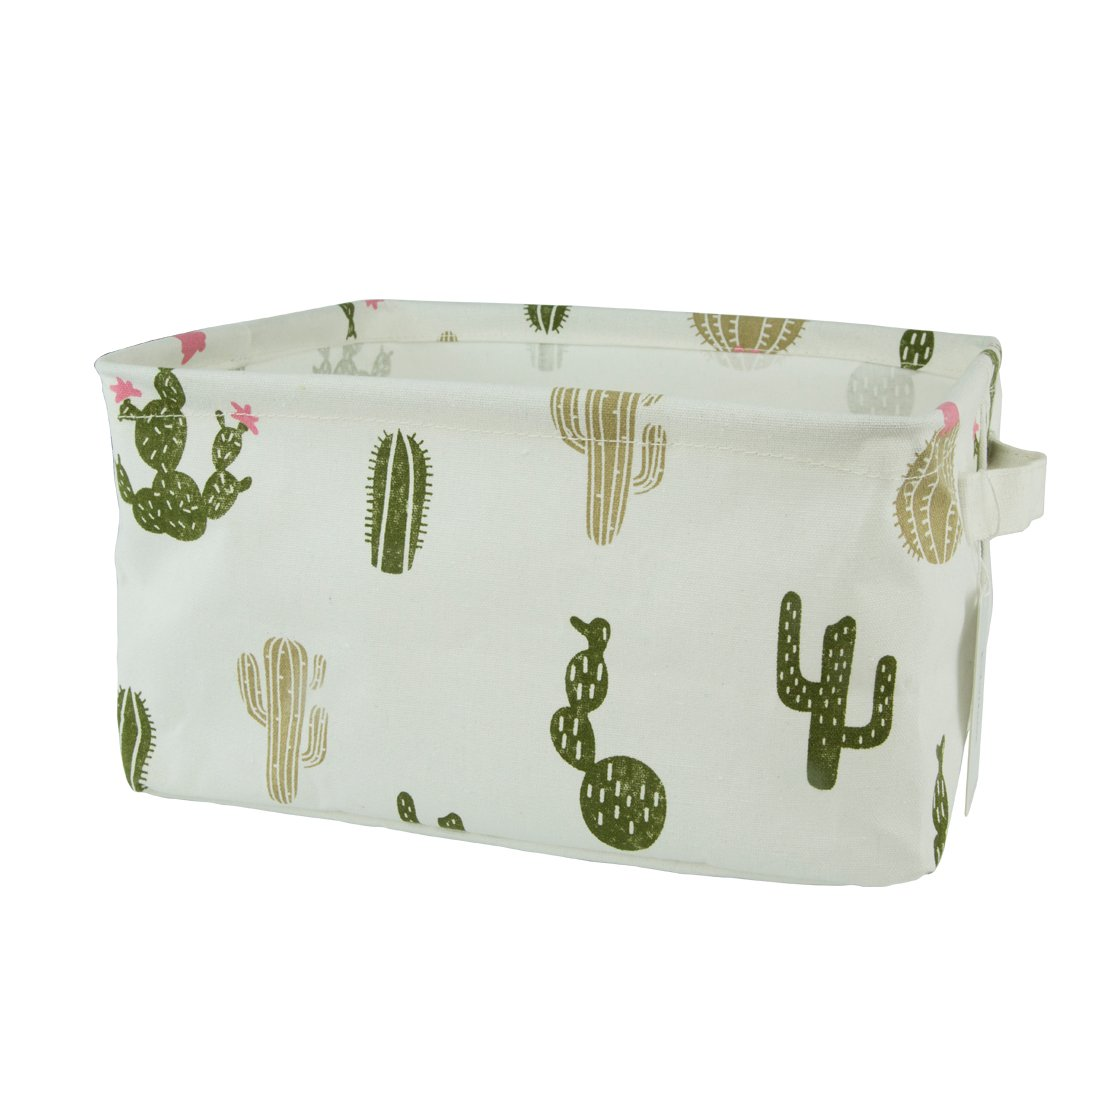 Homiak Canvas Fabric Foldable Organizer Storage Basket with Handle, Collapsible and Convenient for Nursery and Babies Room (Green Cactus)